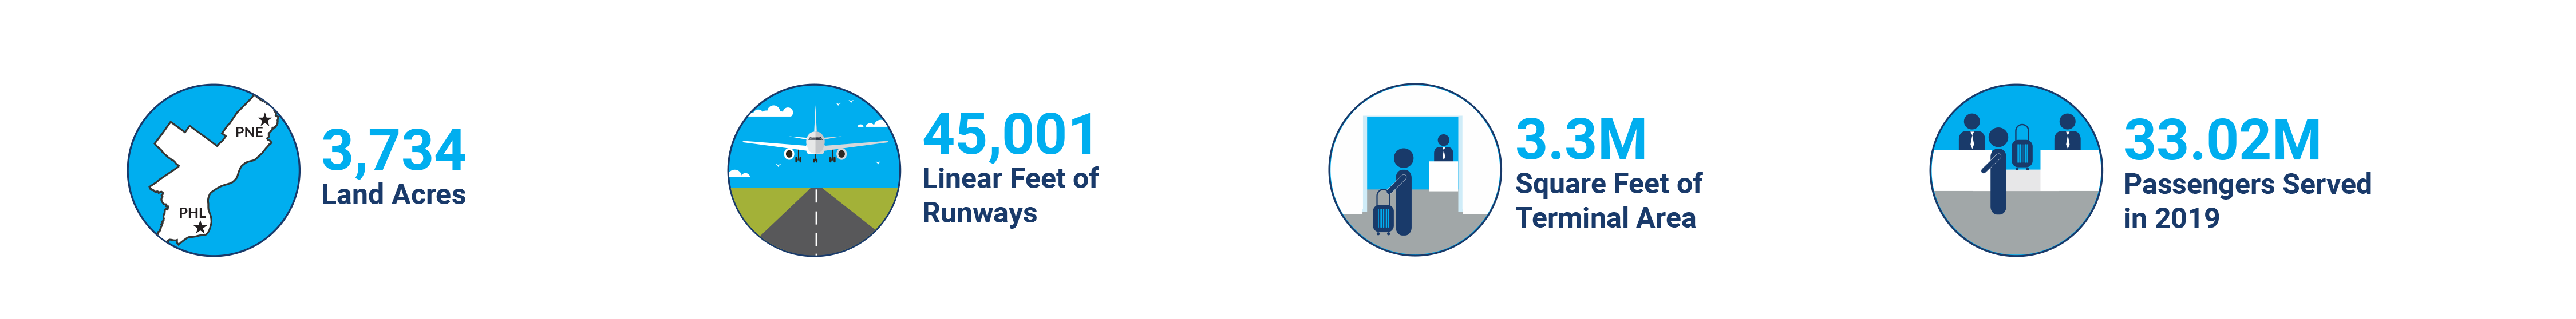 4 icons showing facts about airport and project spending on different areas